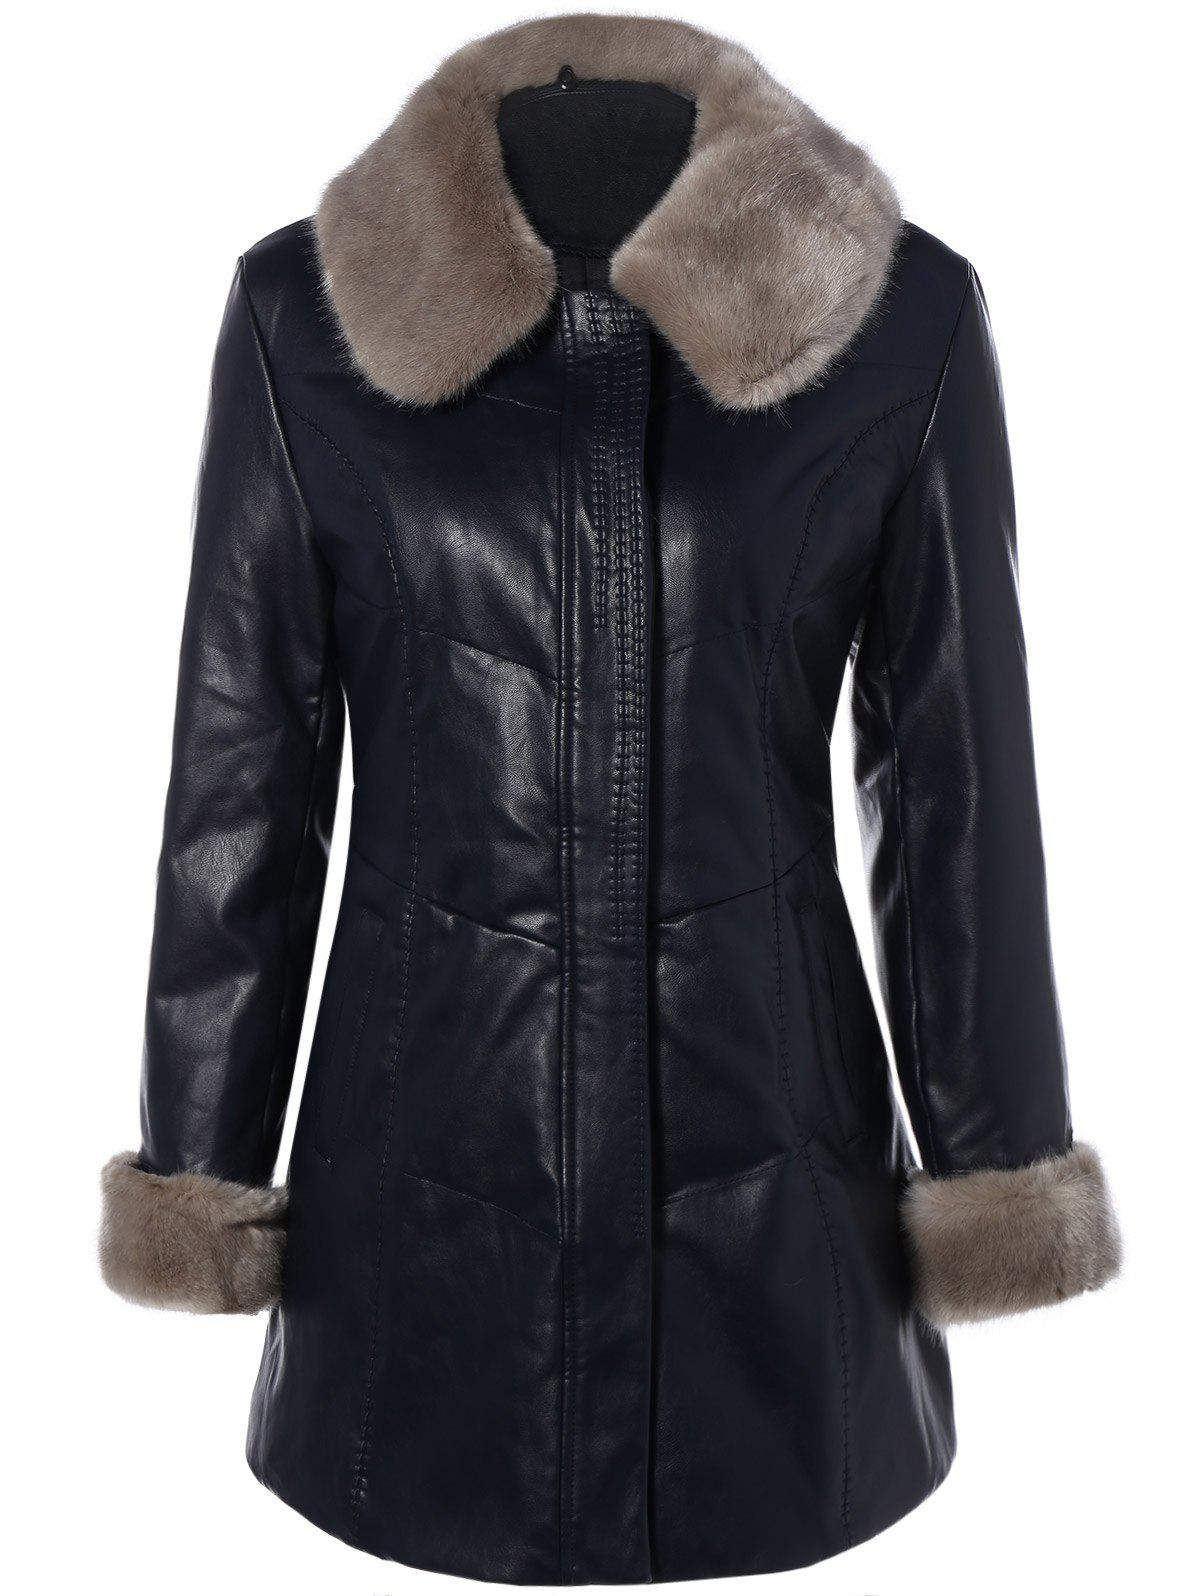 Store Faux Fur Collar Plus Size PU Leather Coat